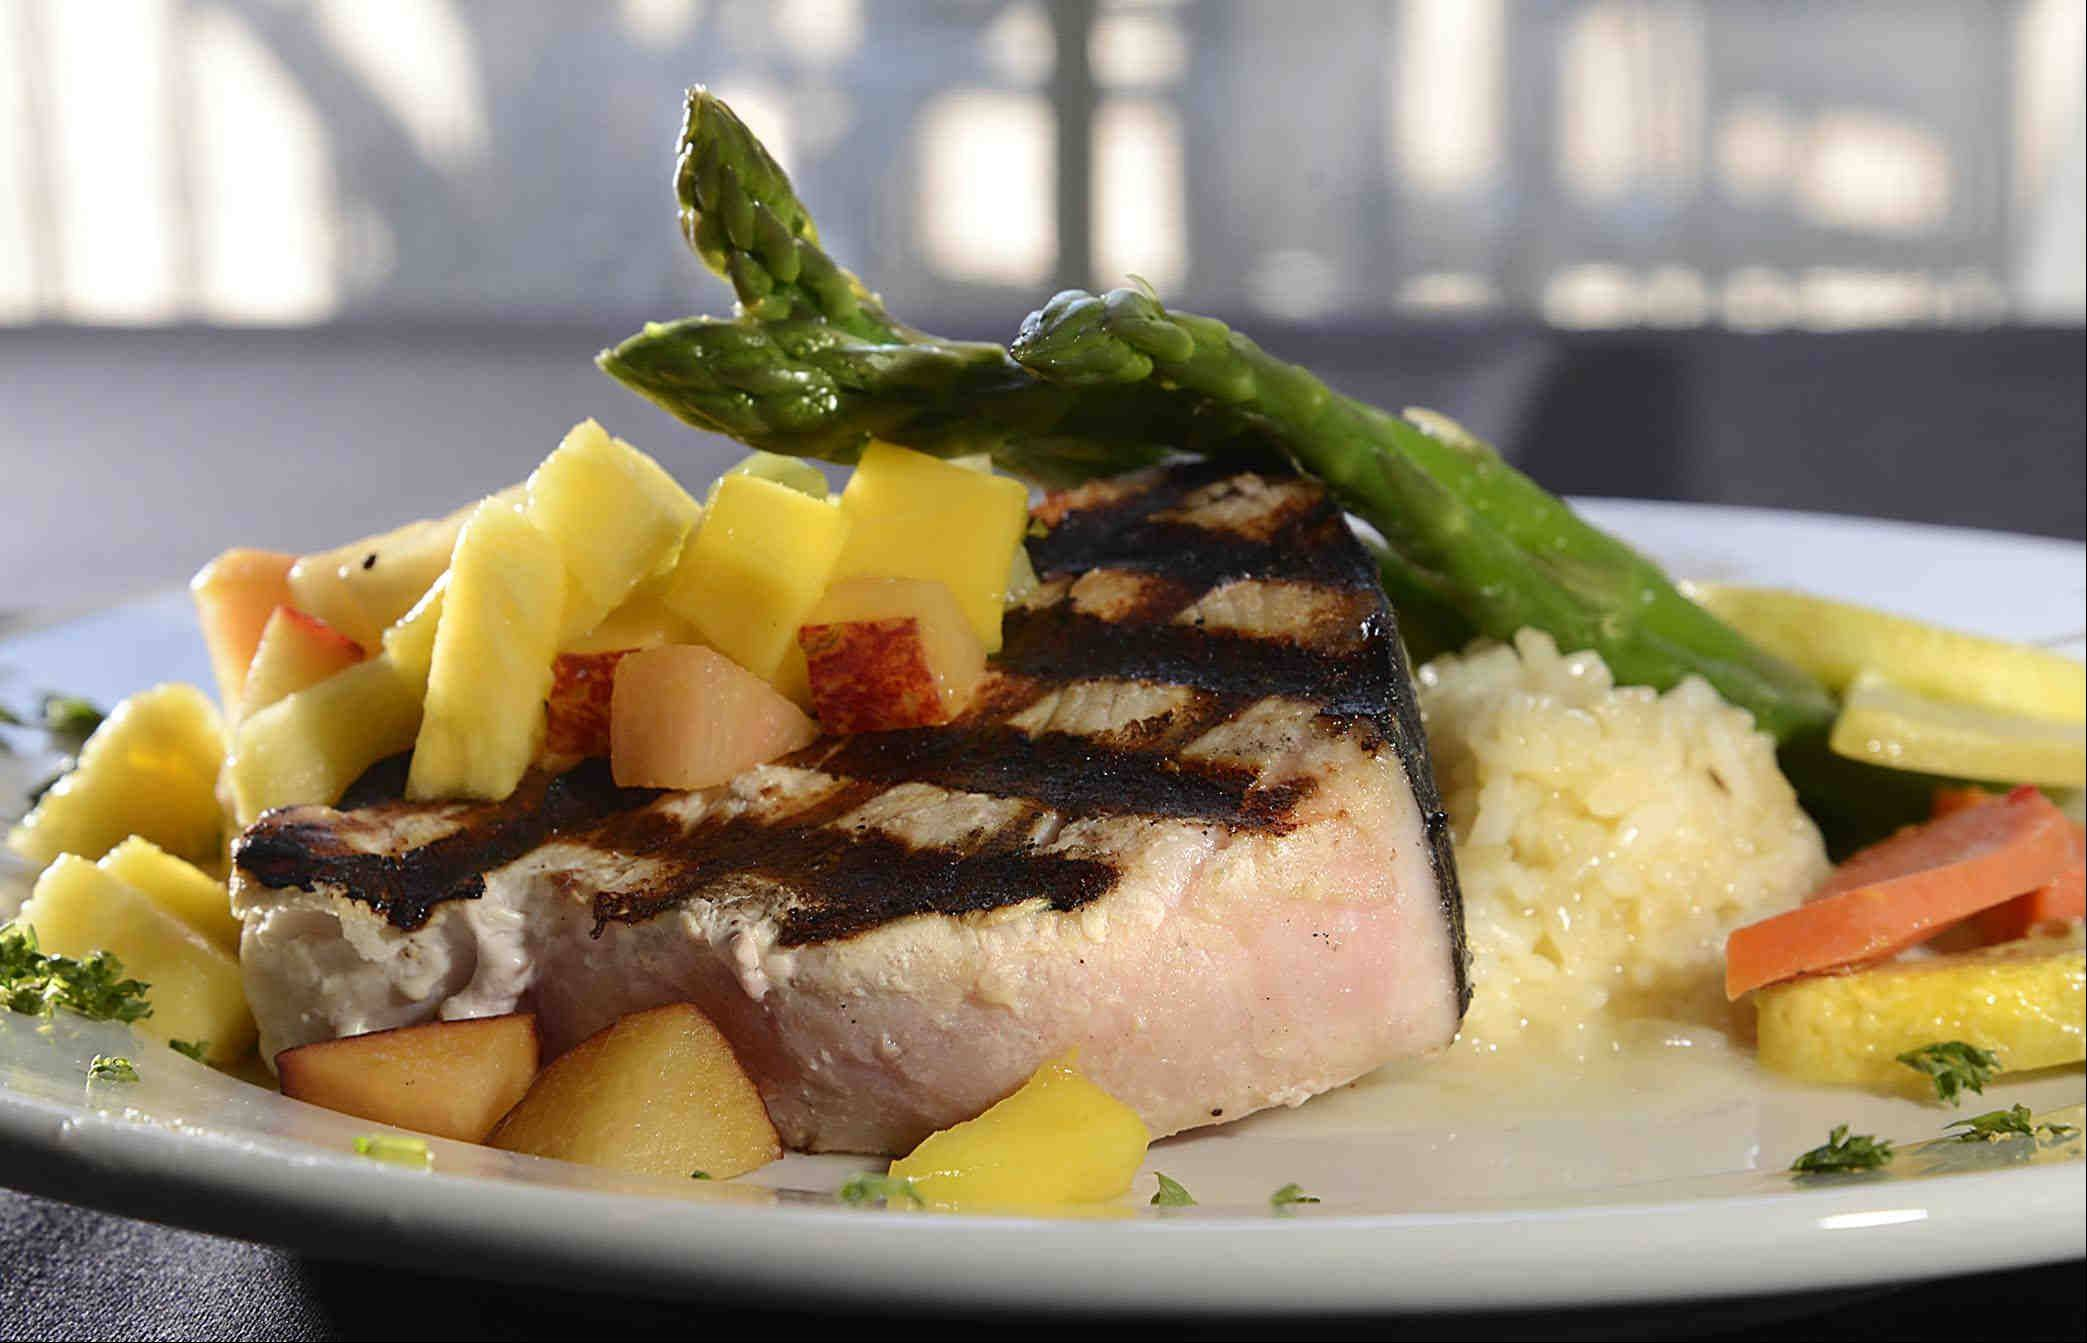 Grilled swordfish with mango, papaya, kiwi salsa and rice awaits diners at Pier 99 in Port Barrington.